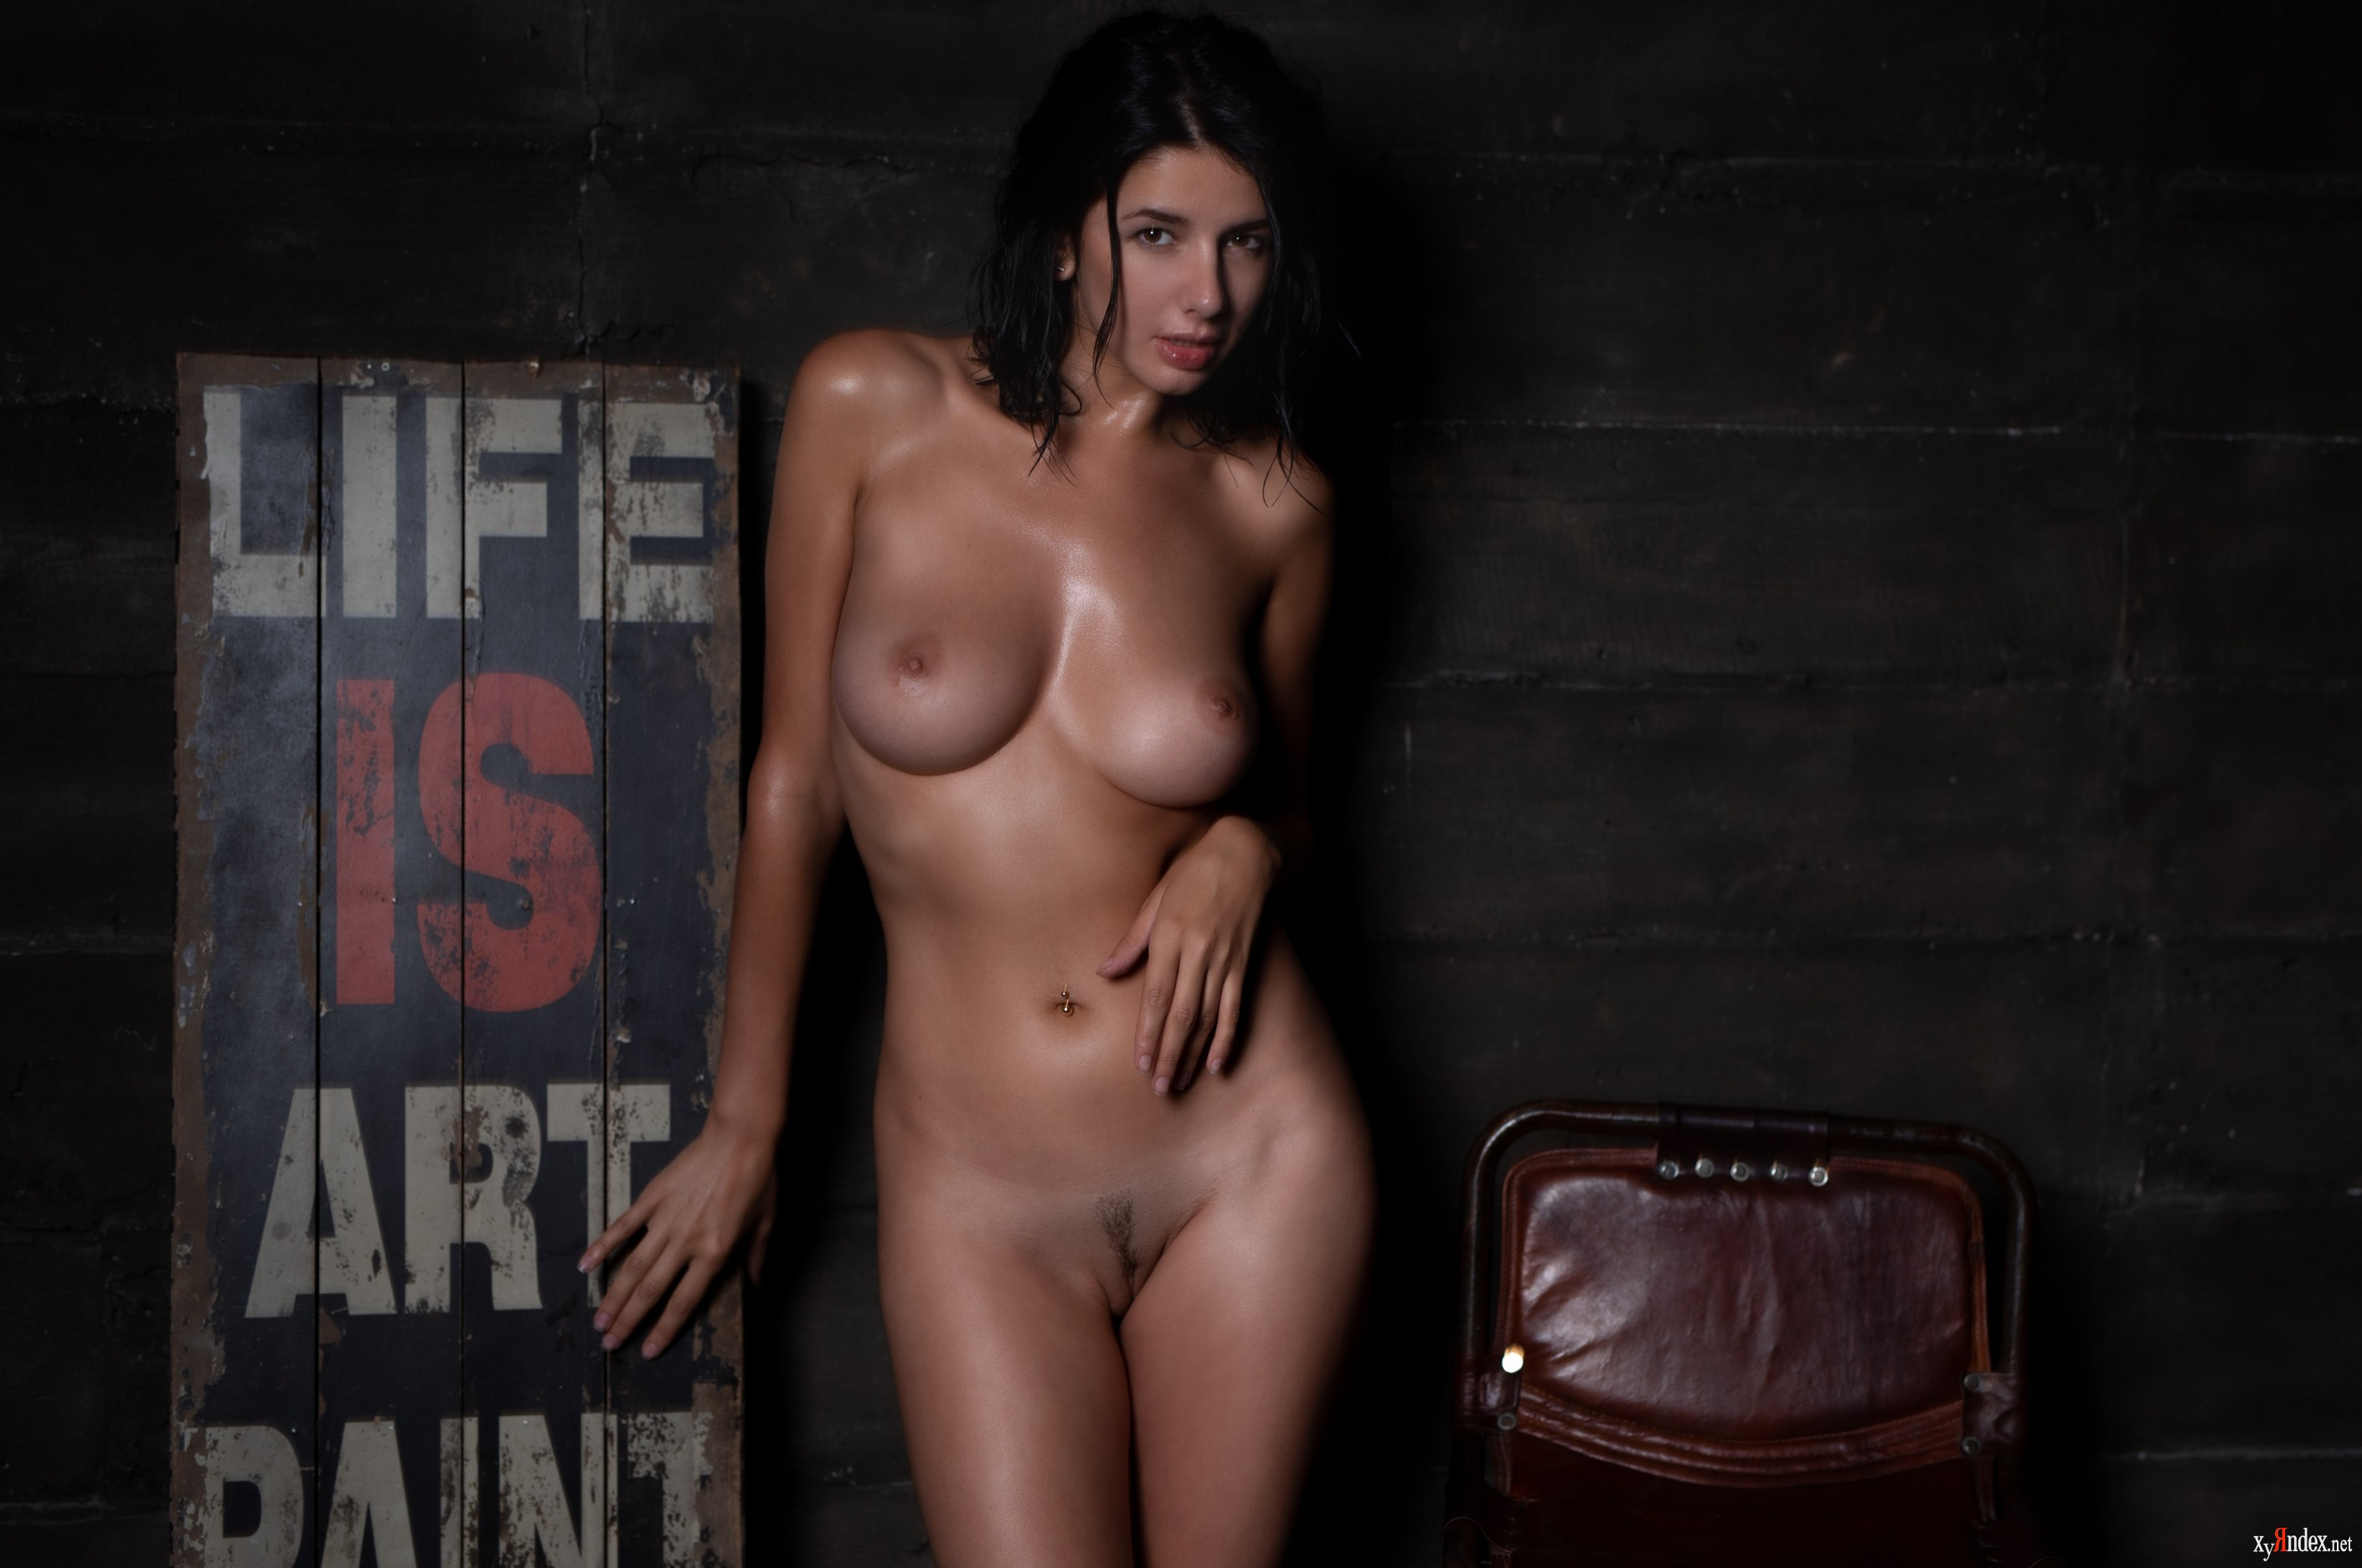 Free porn samples of the life erotic